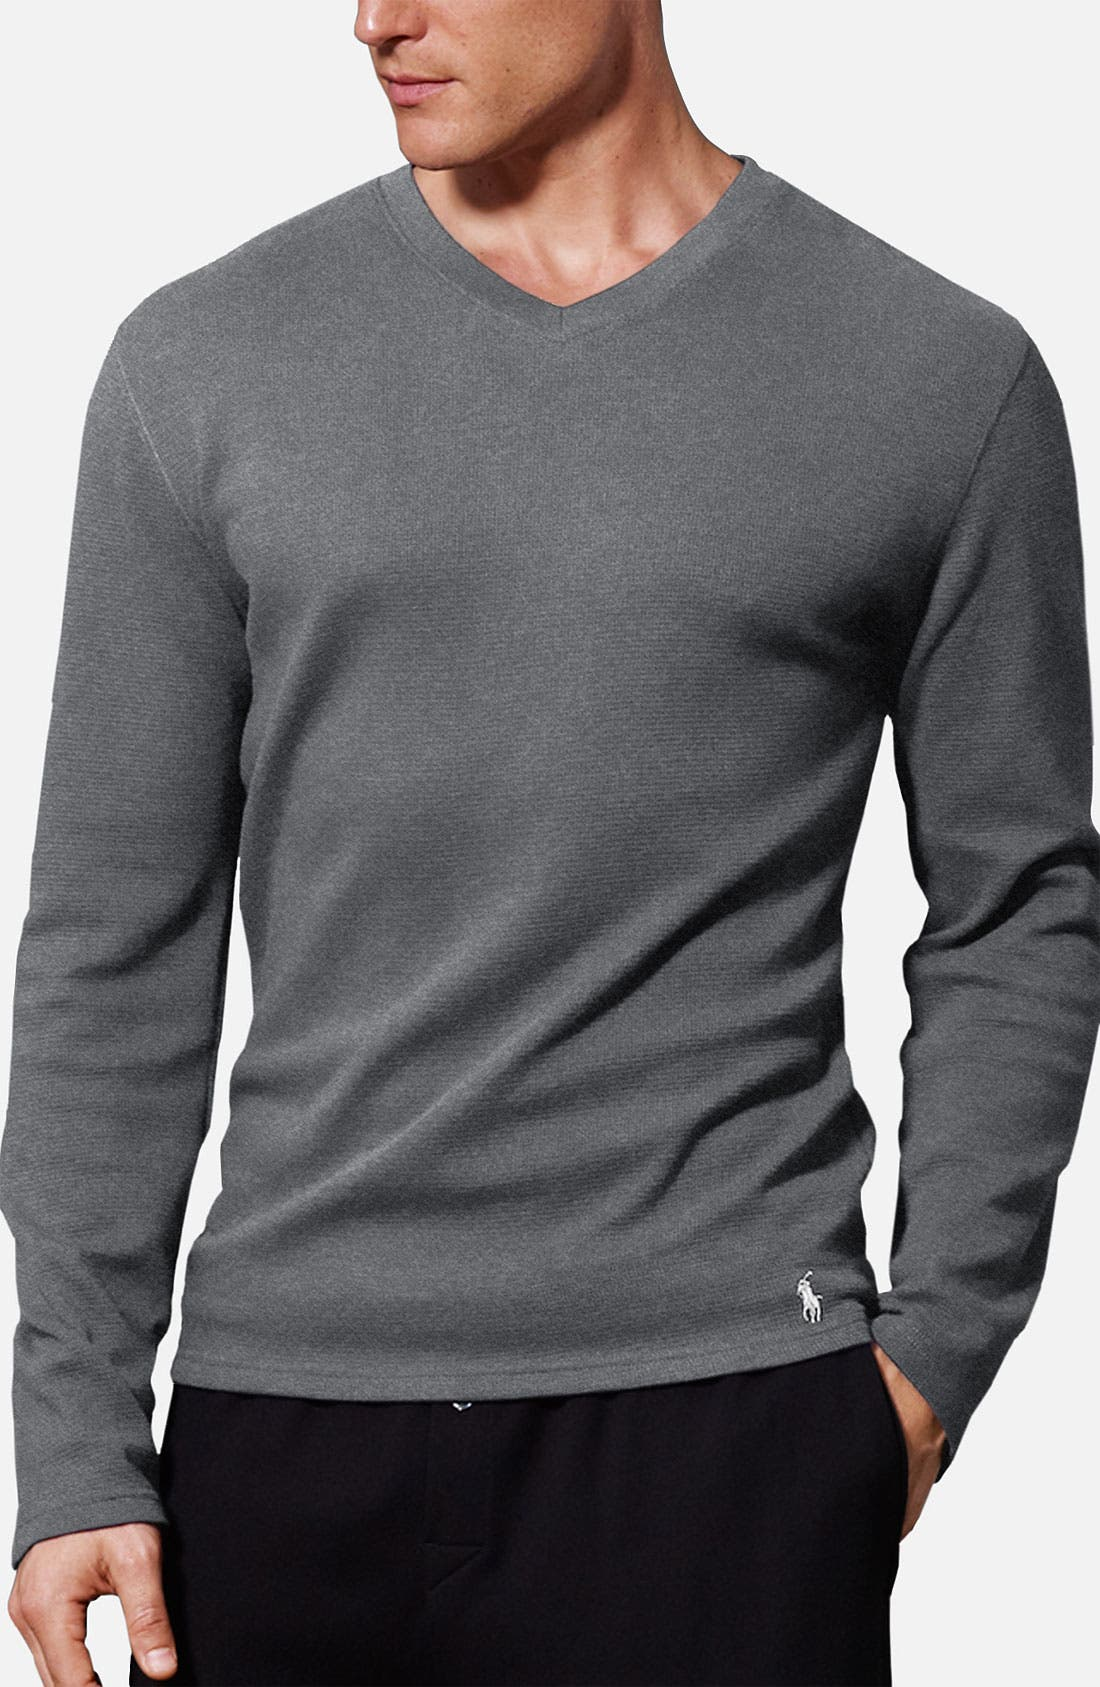 Alternate Image 1 Selected - Polo Ralph Lauren Long Sleeve Thermal T-Shirt